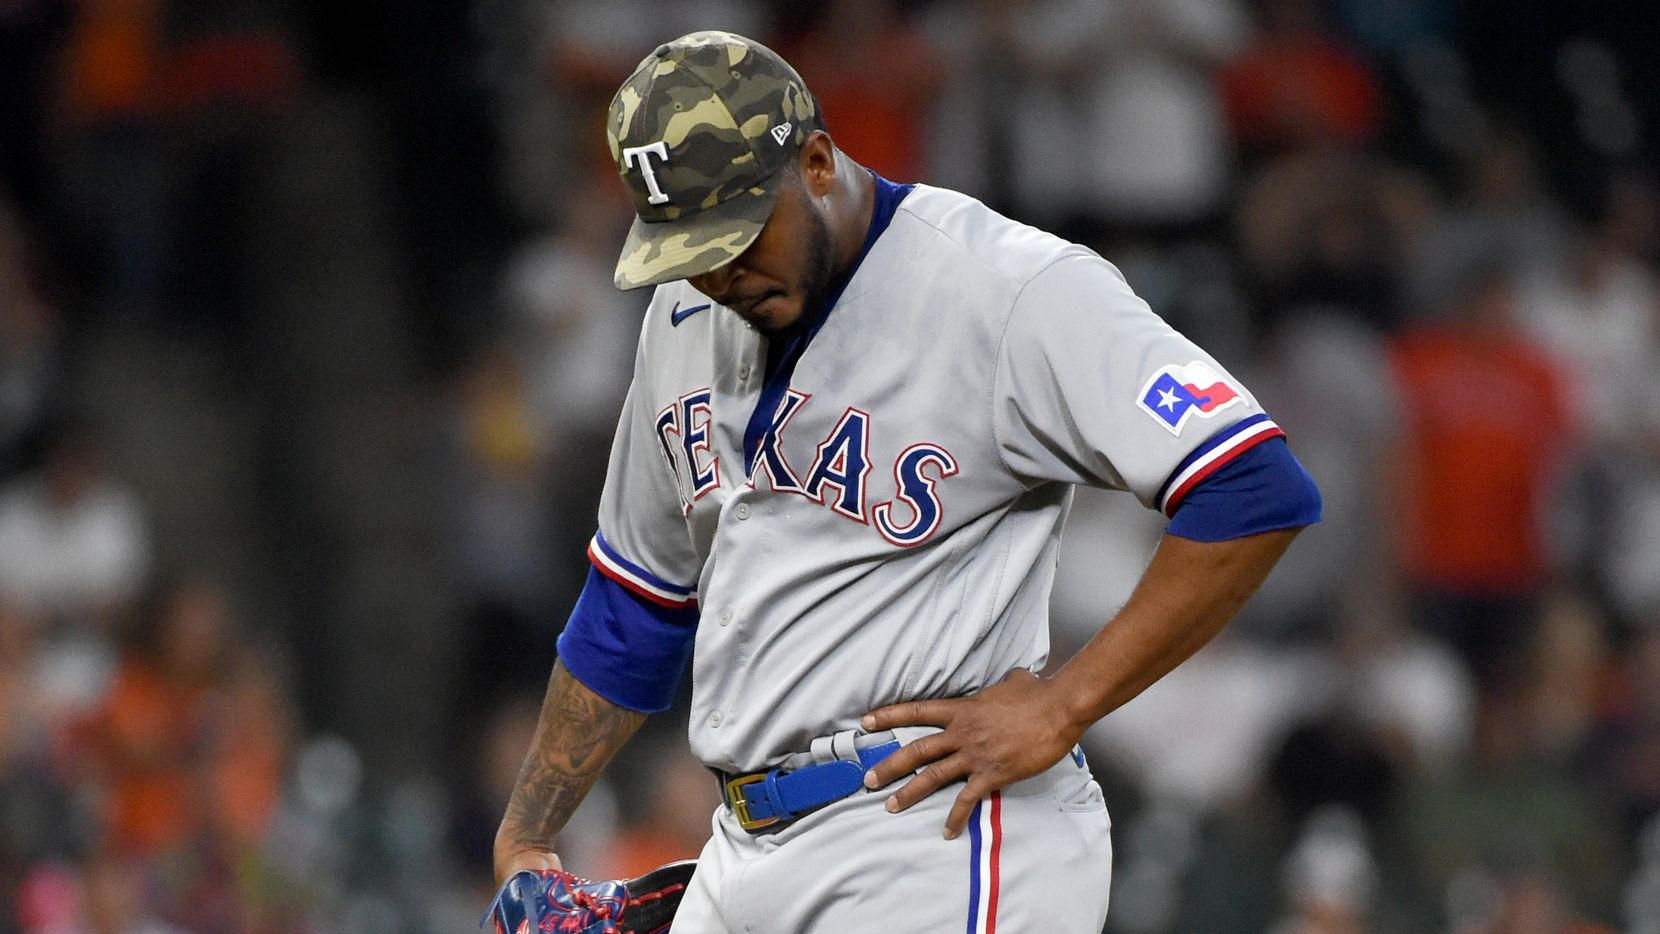 Texas Rangers relief pitcher Joely Rodriguez reacts after giving up a two-run single during the eighth inning of a baseball game, Sunday, May 16, 2021, in Houston. (AP Photo/Eric Christian Smith)